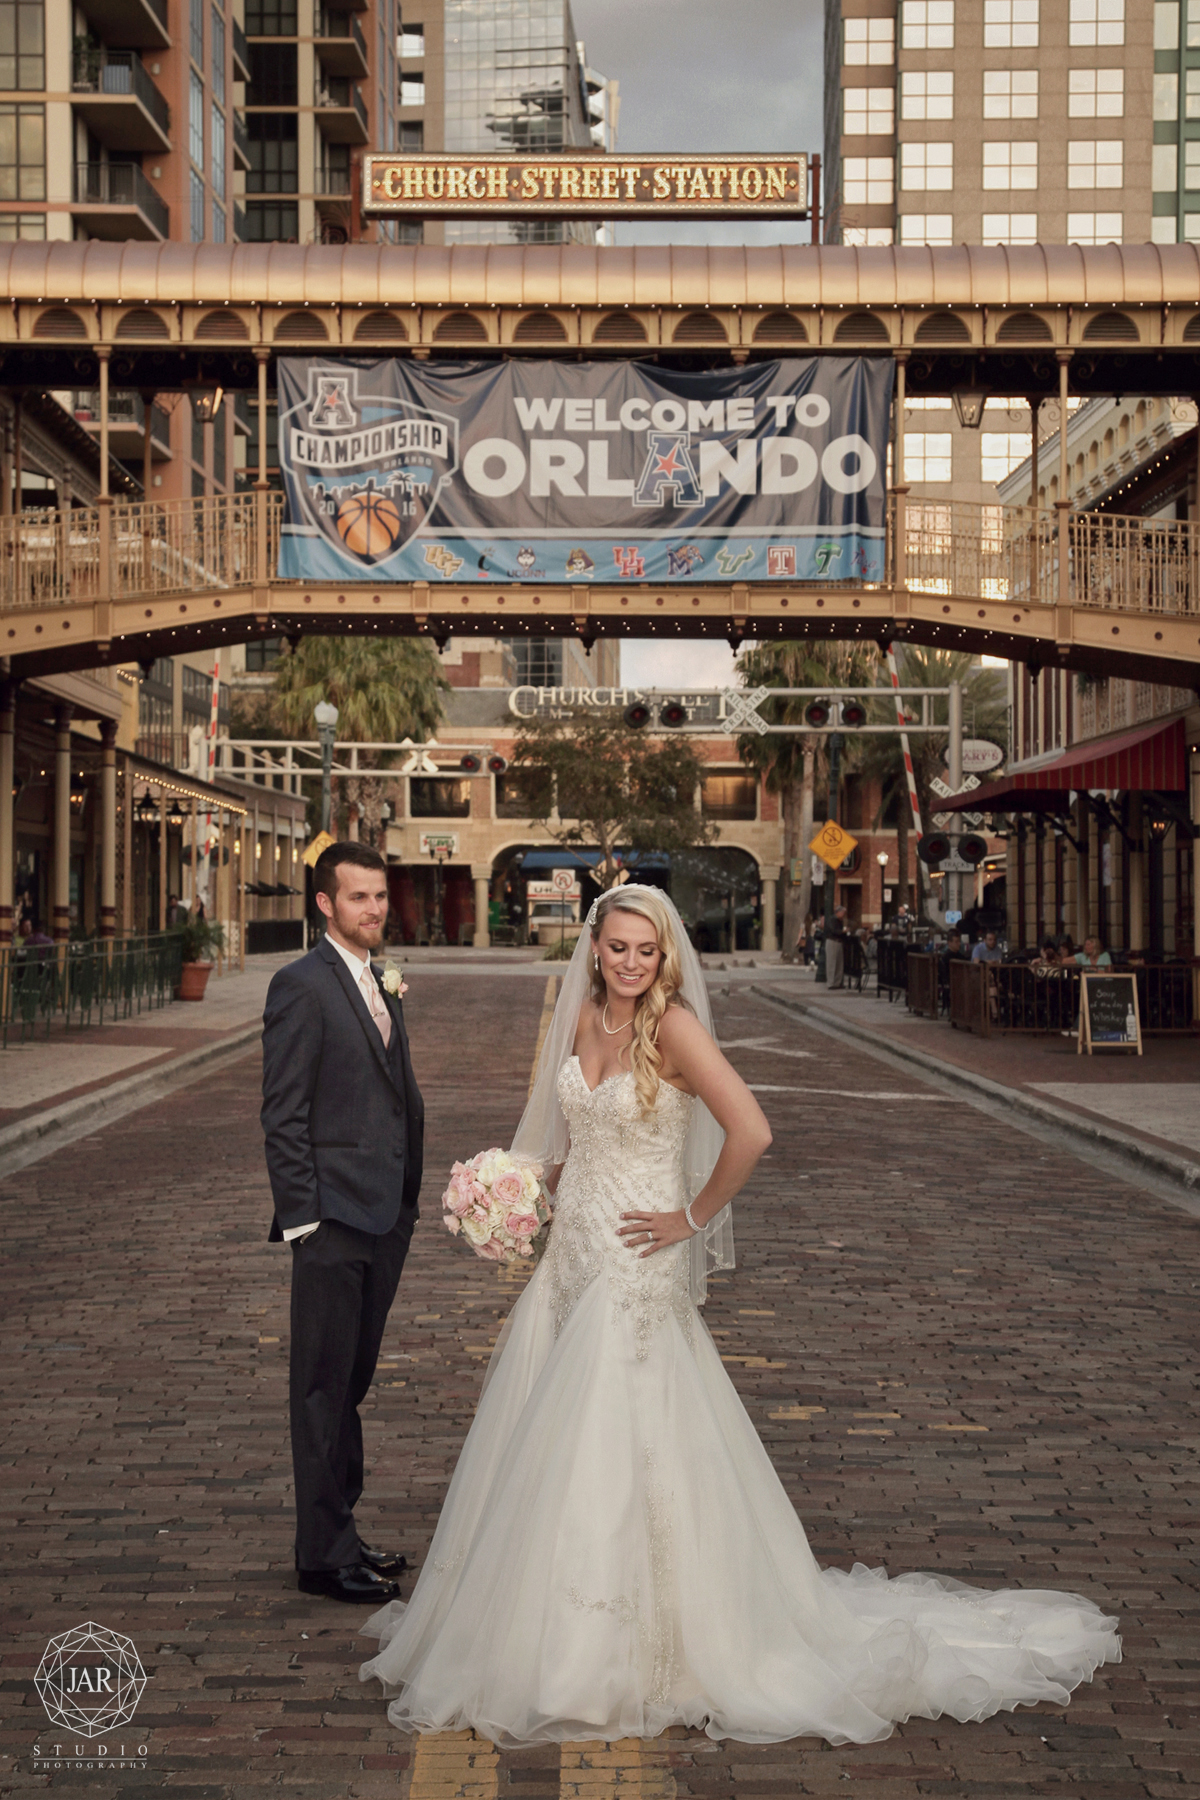 14-bride-groom-church-street-station-orlando-jarstudio-photography.jpg